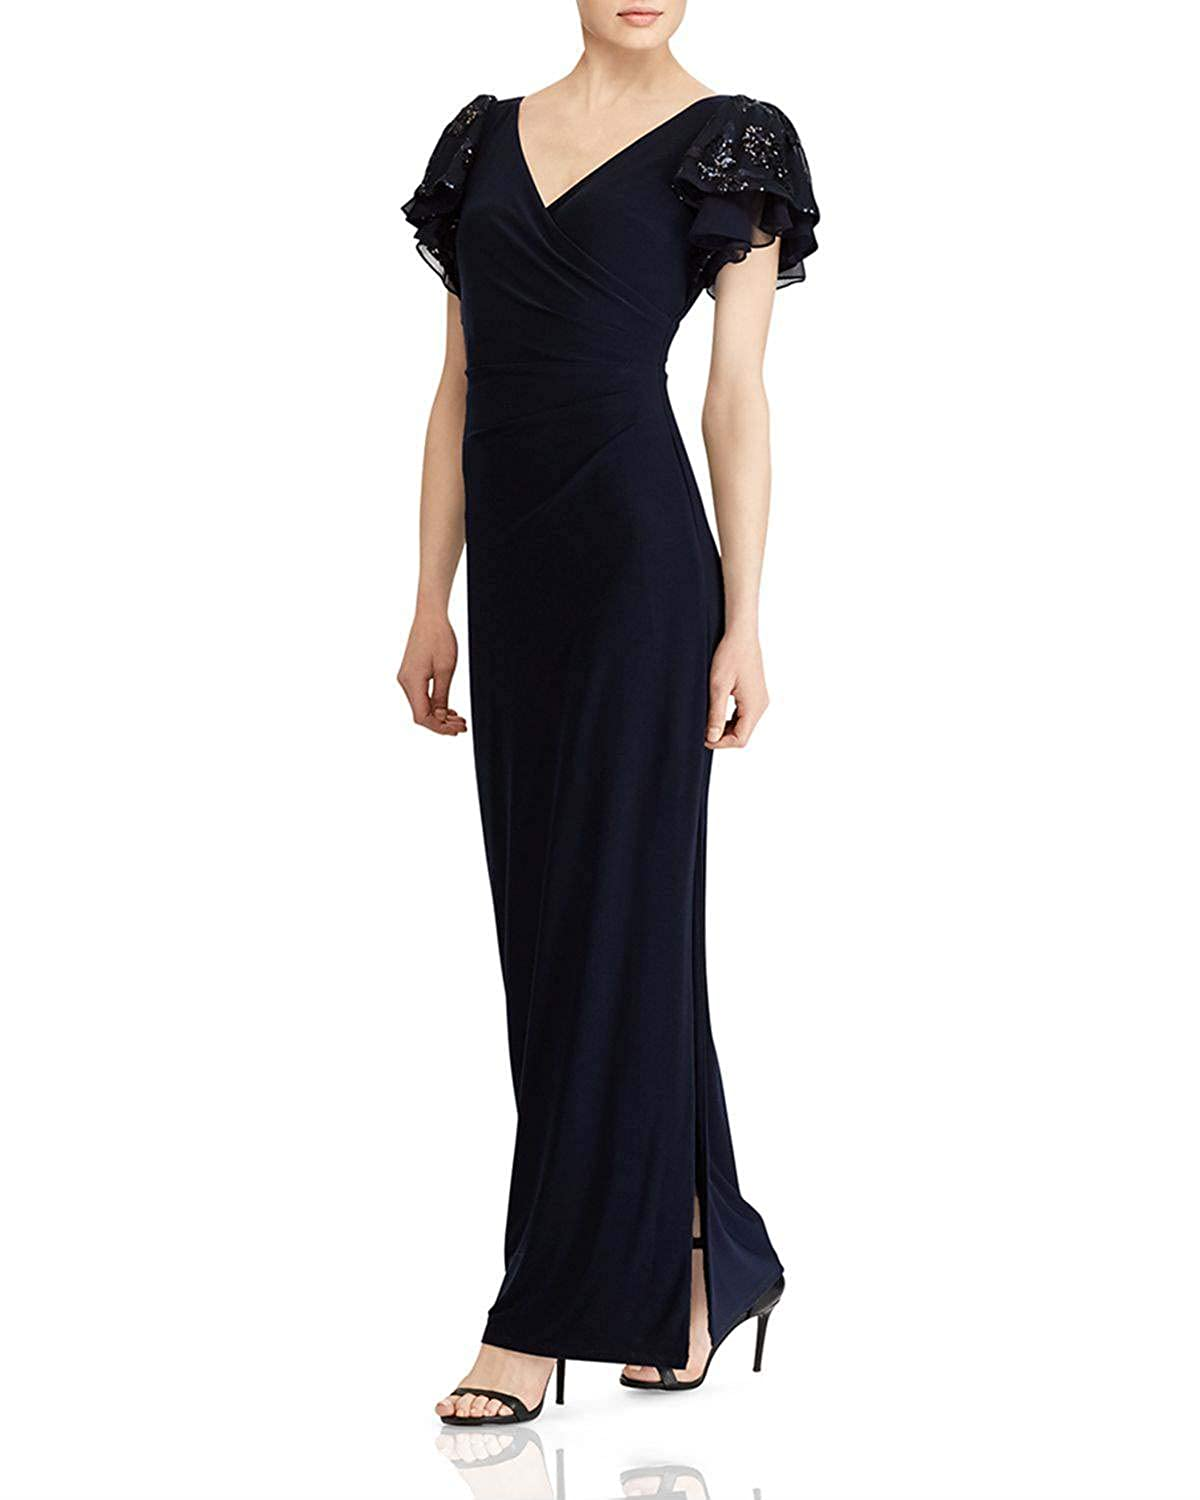 Black Wanshaqin Women's Embellished Flutter Caps Sleeves Evening Formal Gown Wedding Party Dress Pleated VNeck